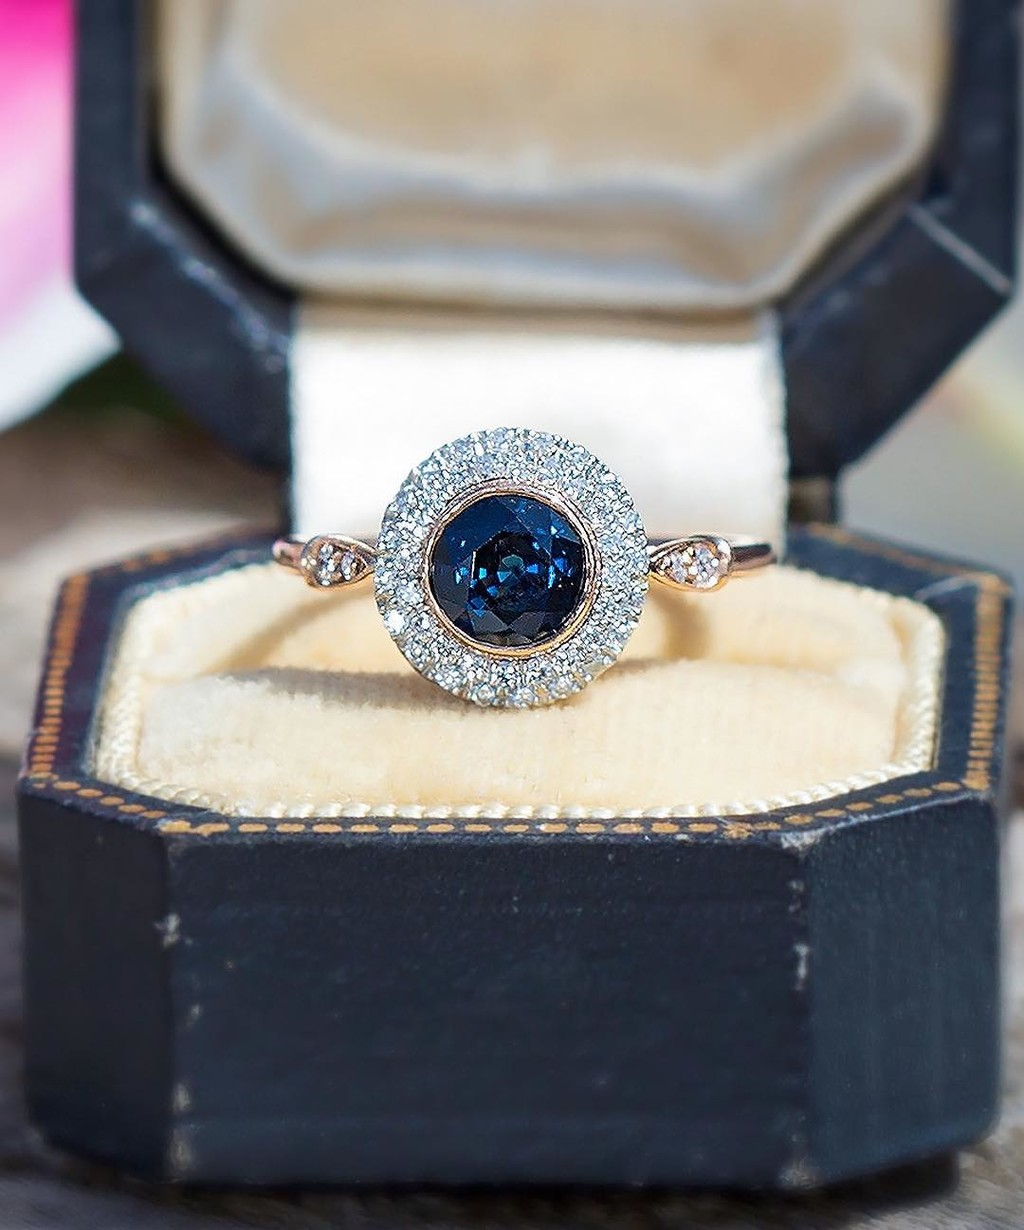 Guess: Montana Or Australian Or Post-Consumer Sapphire? 💙🦋🌟 We love working with all three. Especially when set in recycled